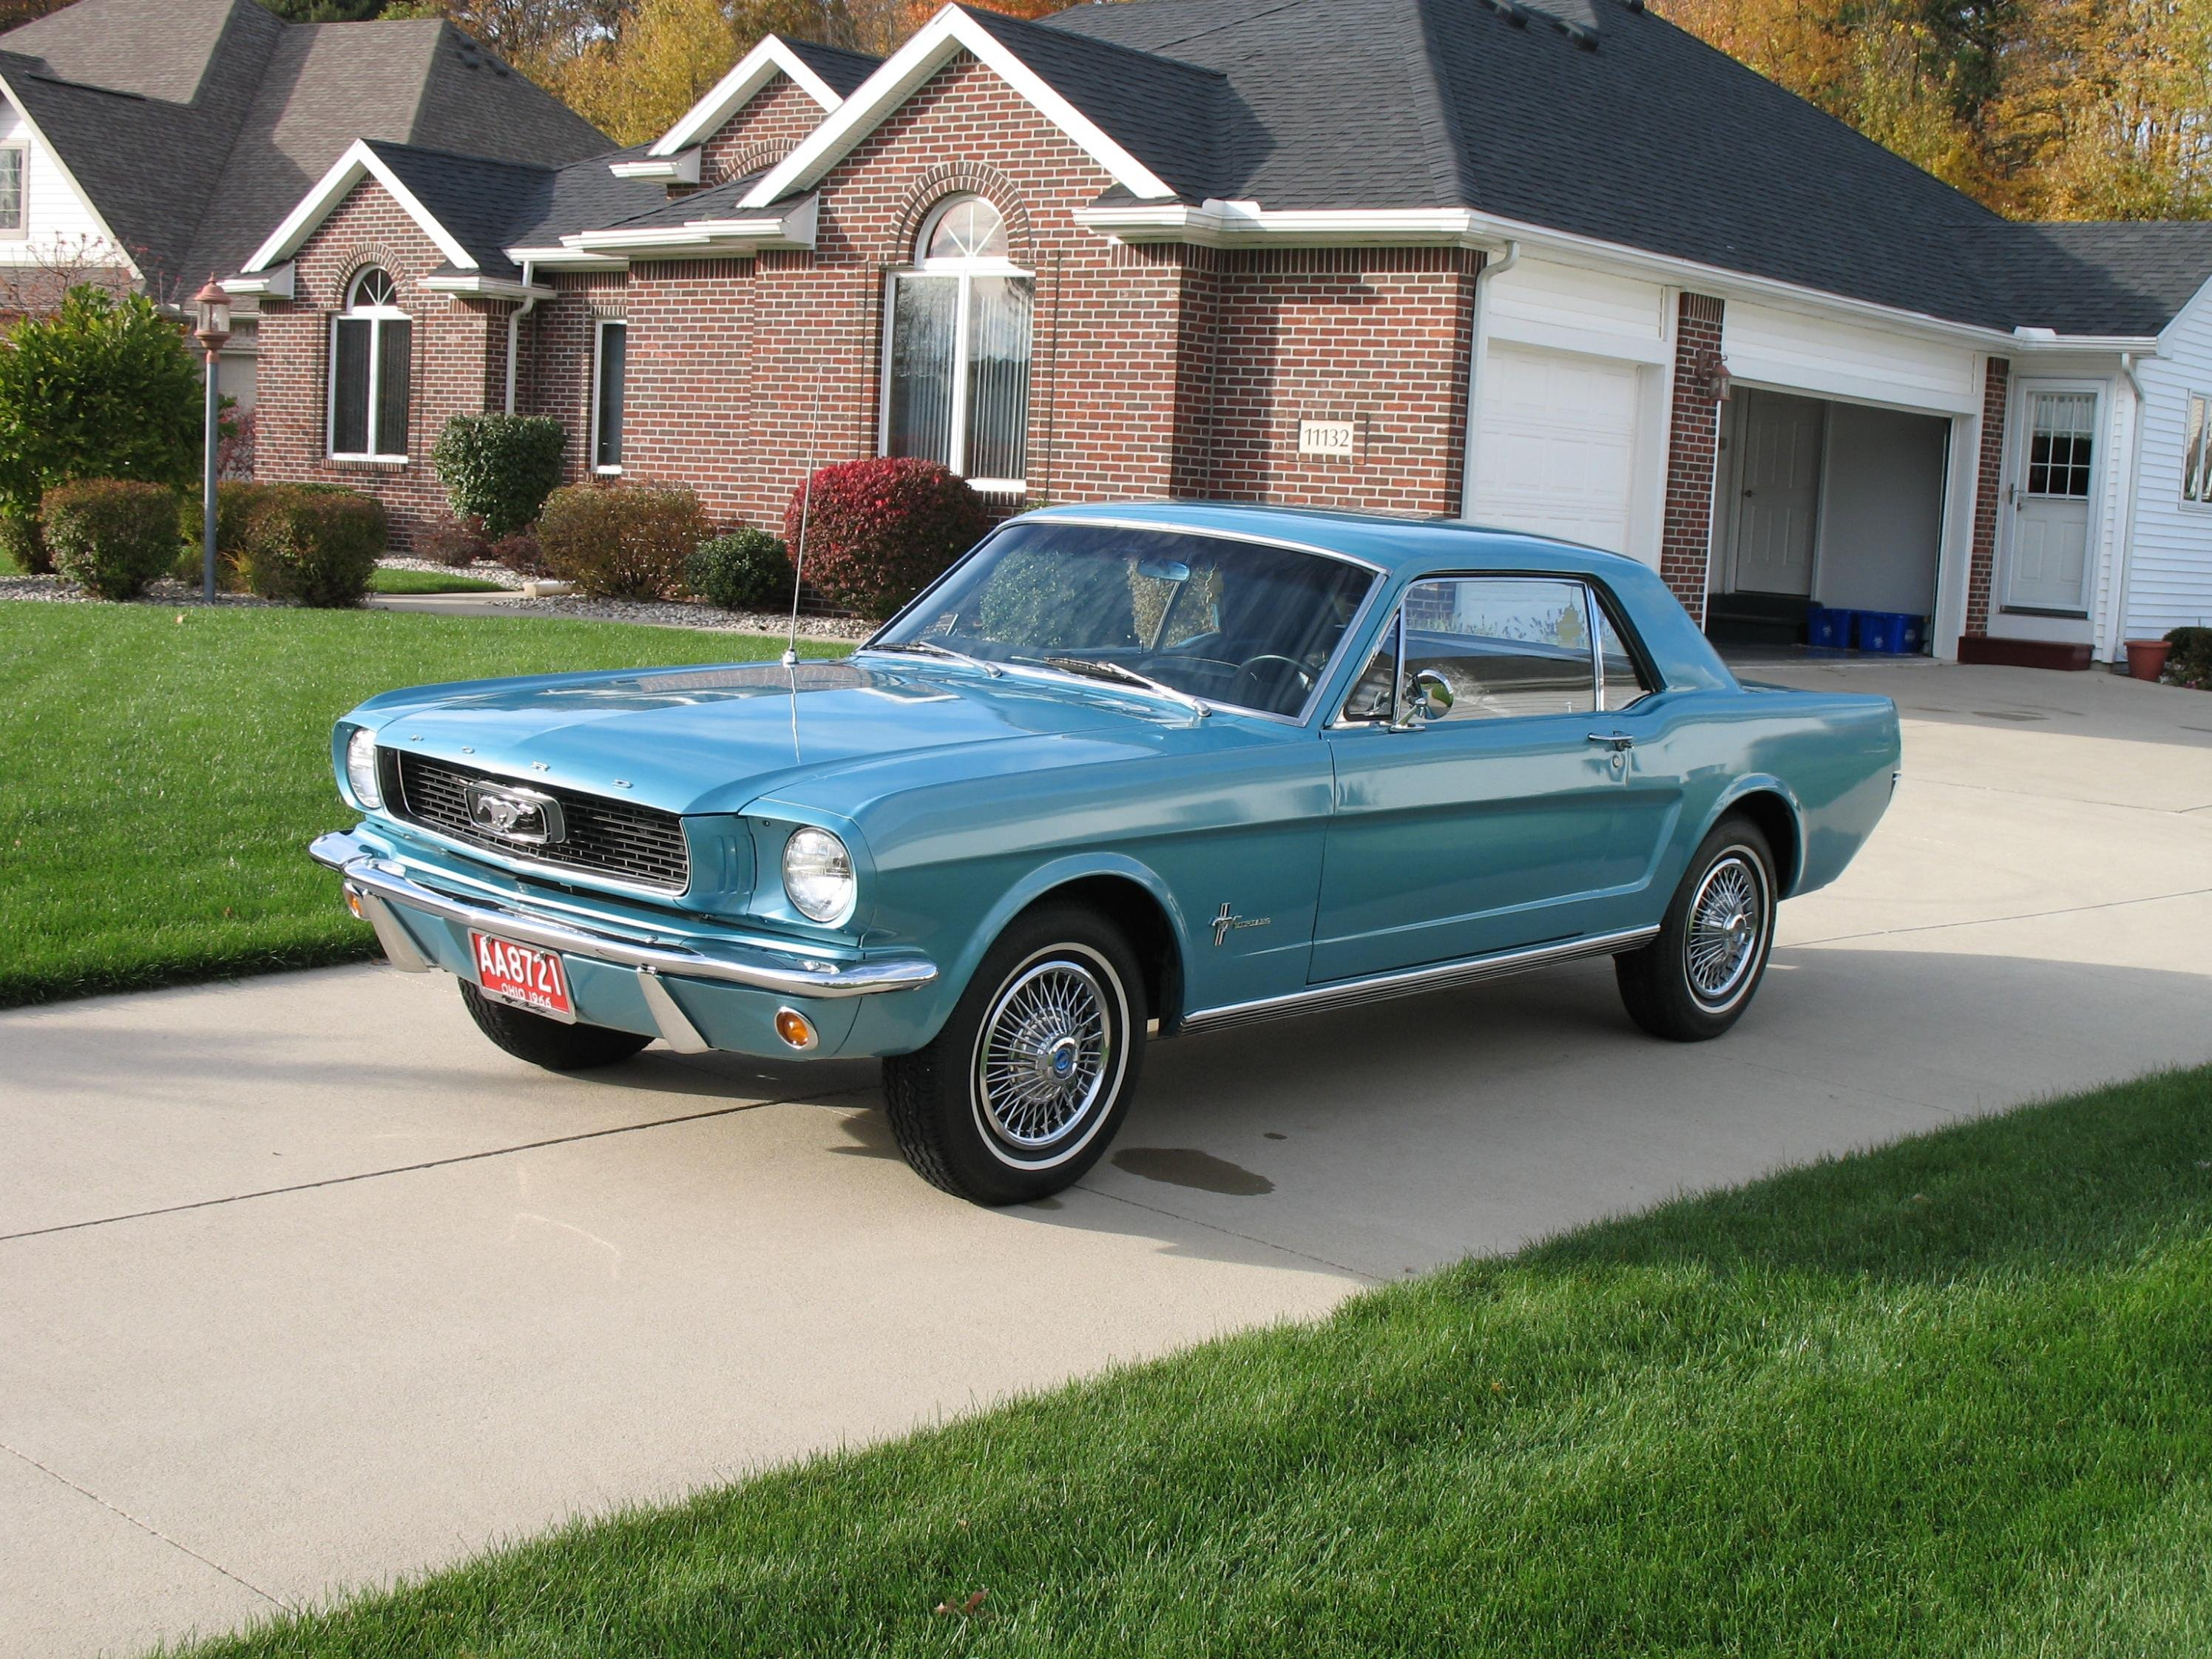 1966 Mustang What Is The Real Tahoe Turquoise Color